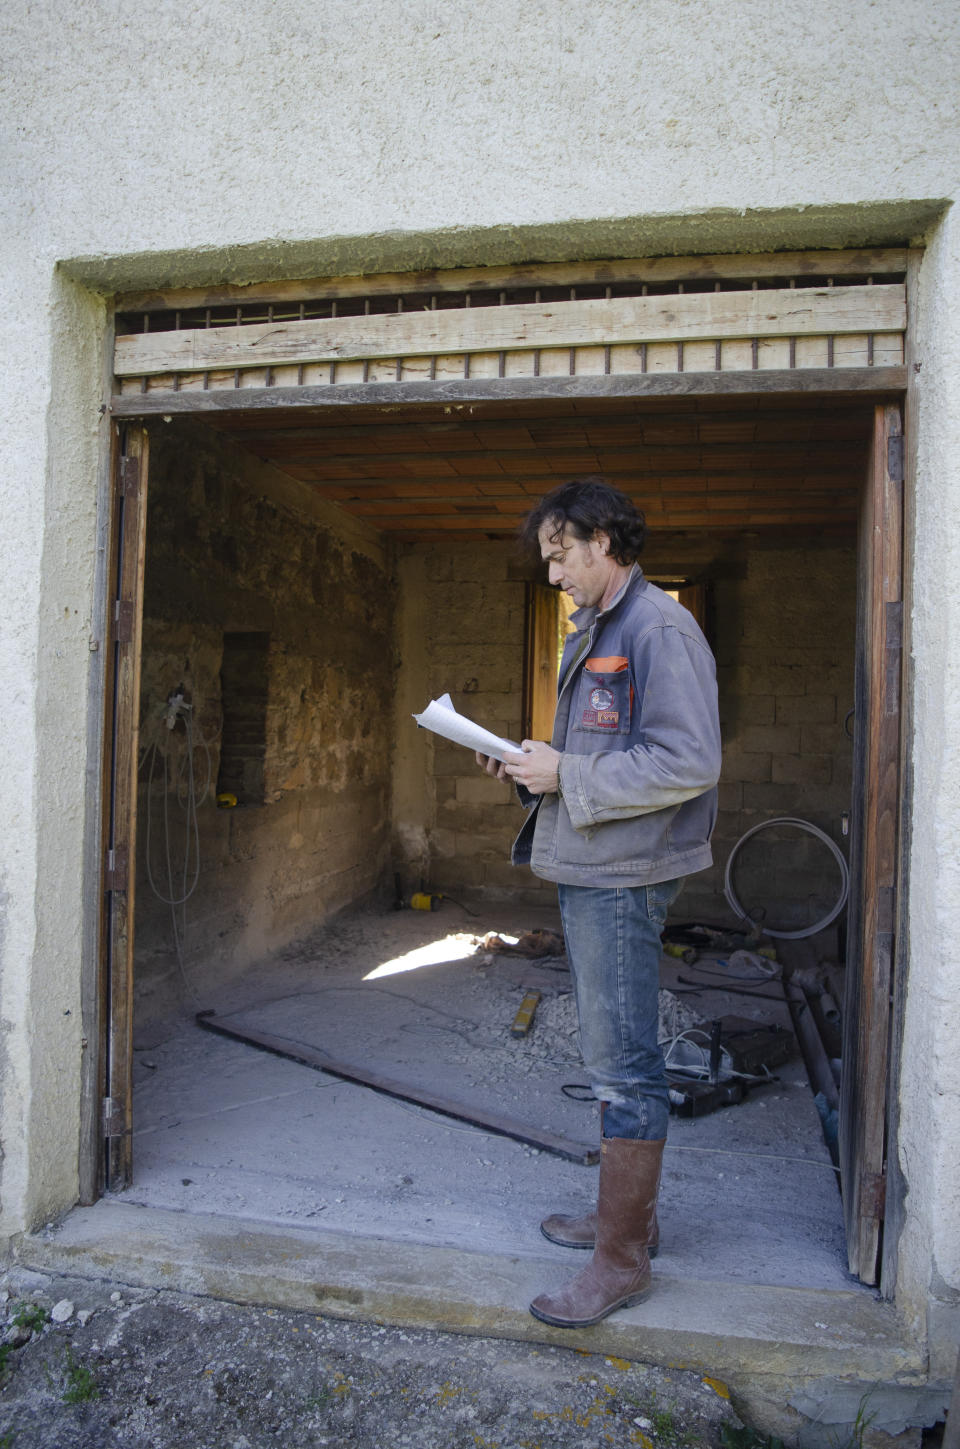 Cain Burdeau studies plans electrical circuits he plans to install at a country home he is renovating in Castelbuono, Sicily, on April 8, 2021. (AP Photo/Audrey Rodeman)